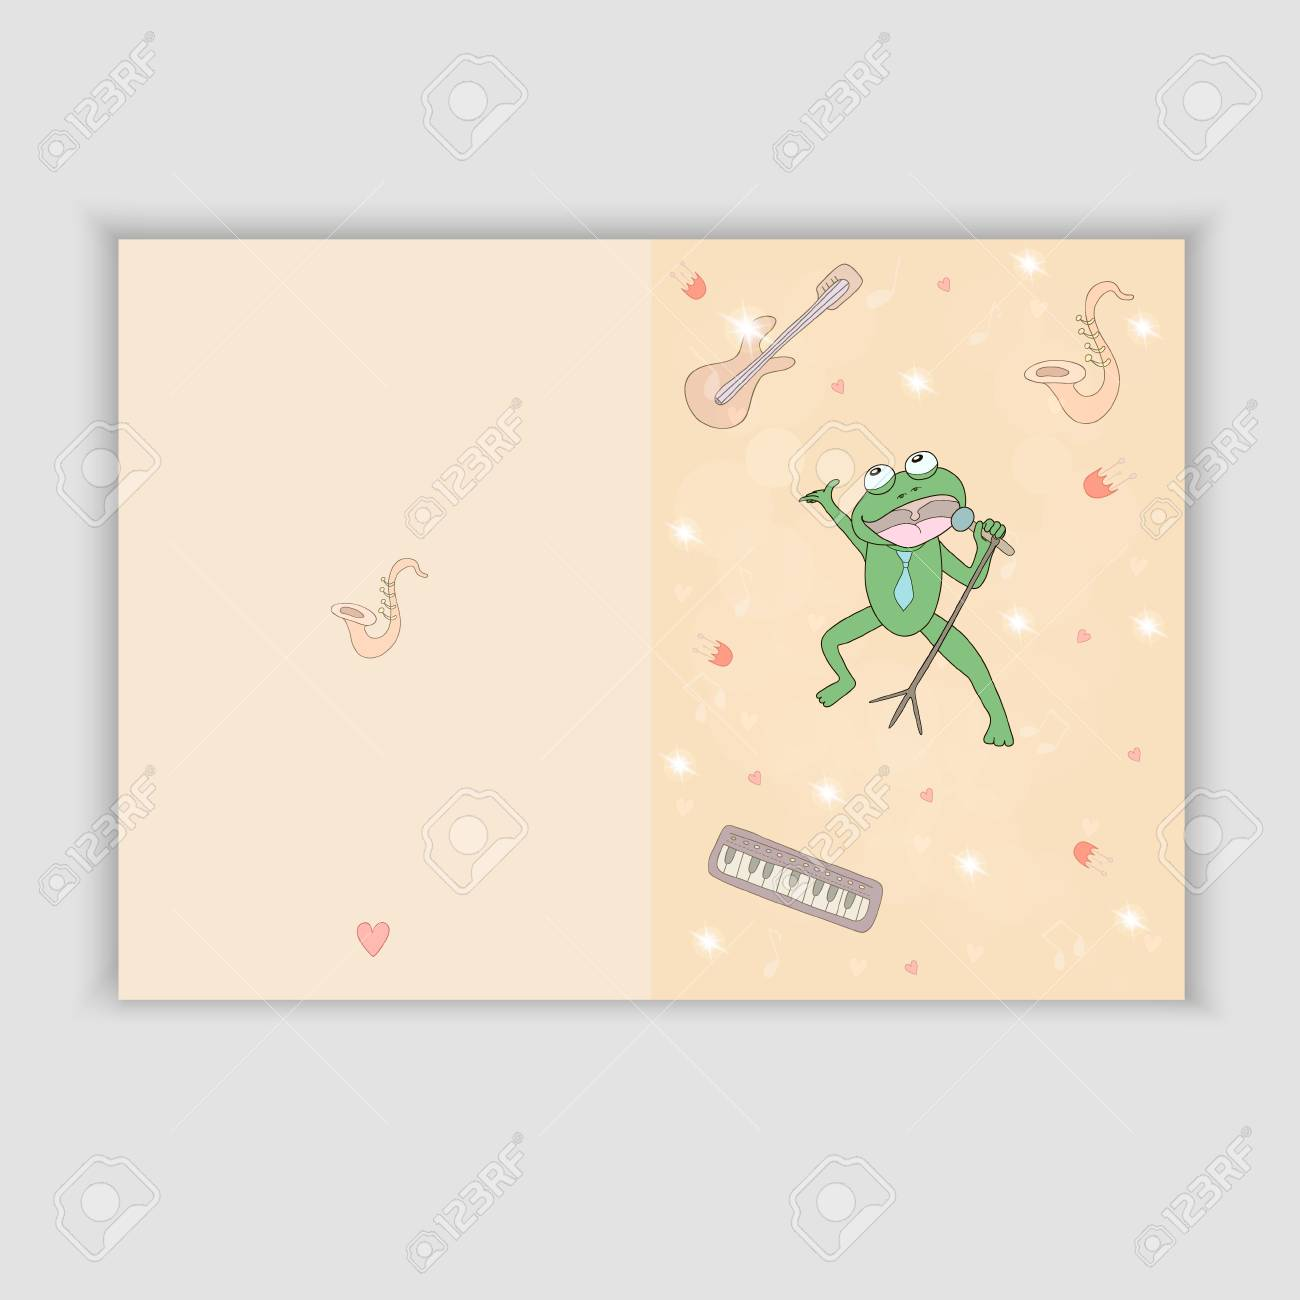 Hand Drawn Greeting Card With Musical Instruments And A Singing